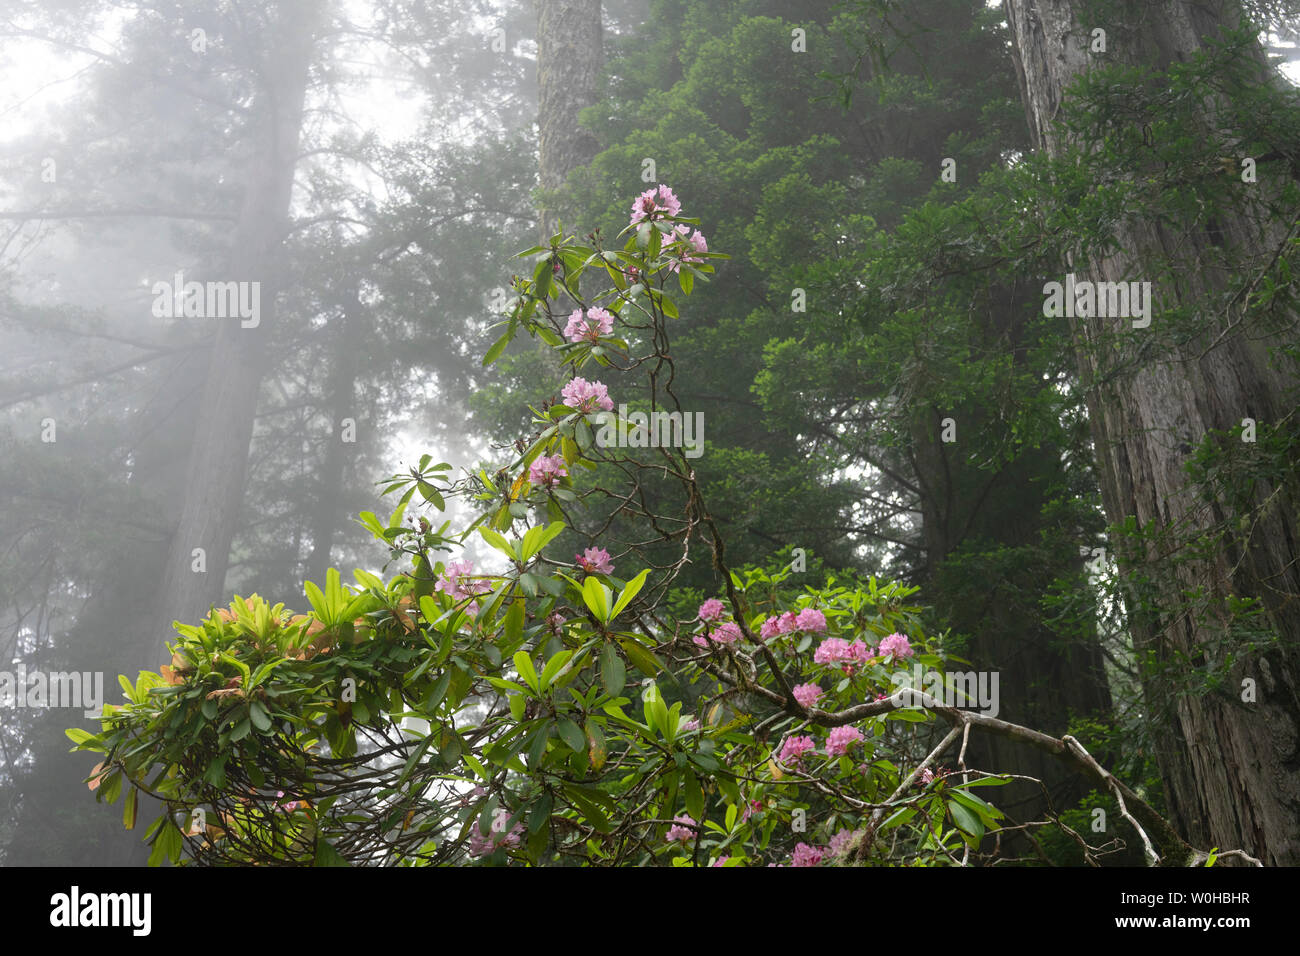 Coastal Mist Hazy Green Towering Trees Pink Rhododendron Lady Bird Johnson Grove Redwoods National Park California. Tallest trees in  World, 1000s of - Stock Image